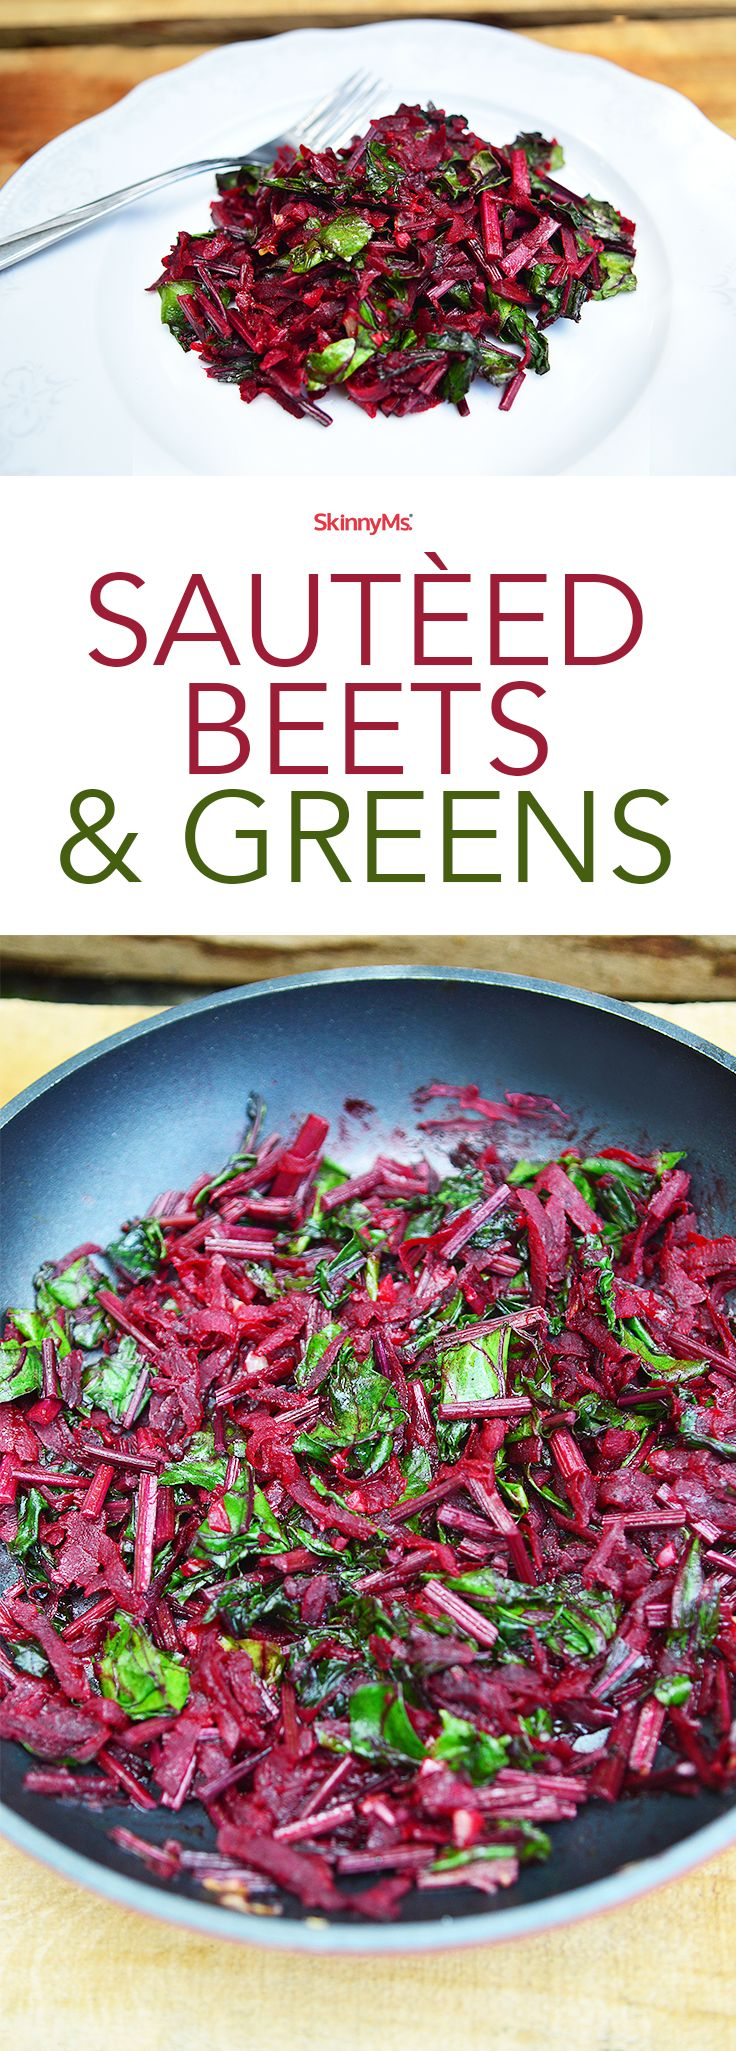 This Sautéed Beets recipe is gorgeous and delicious! This dish makes use of the entire beet, from its sweet red flesh to its vitamin-rich stems. This dish is a real winner! #detox #superfoods #skinnyms